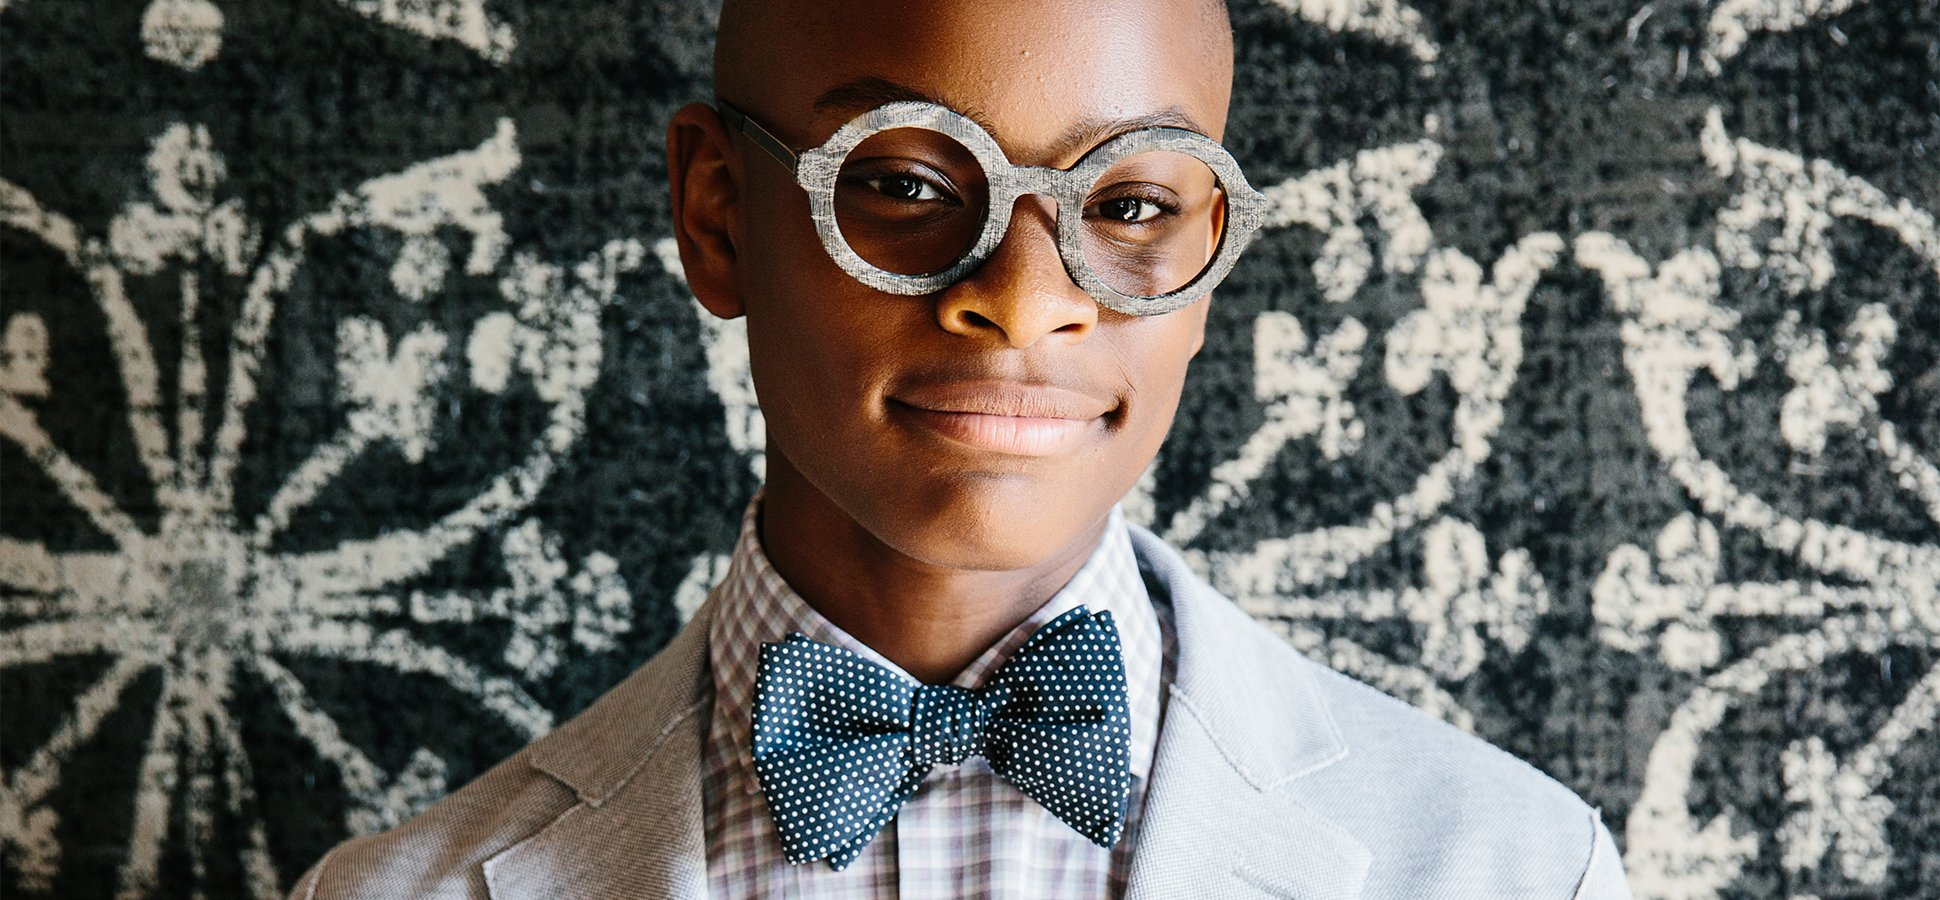 61840a79f9b0 How This 16-Year-Old Founder Built a $600,000 Bow Tie Business | Inc.com